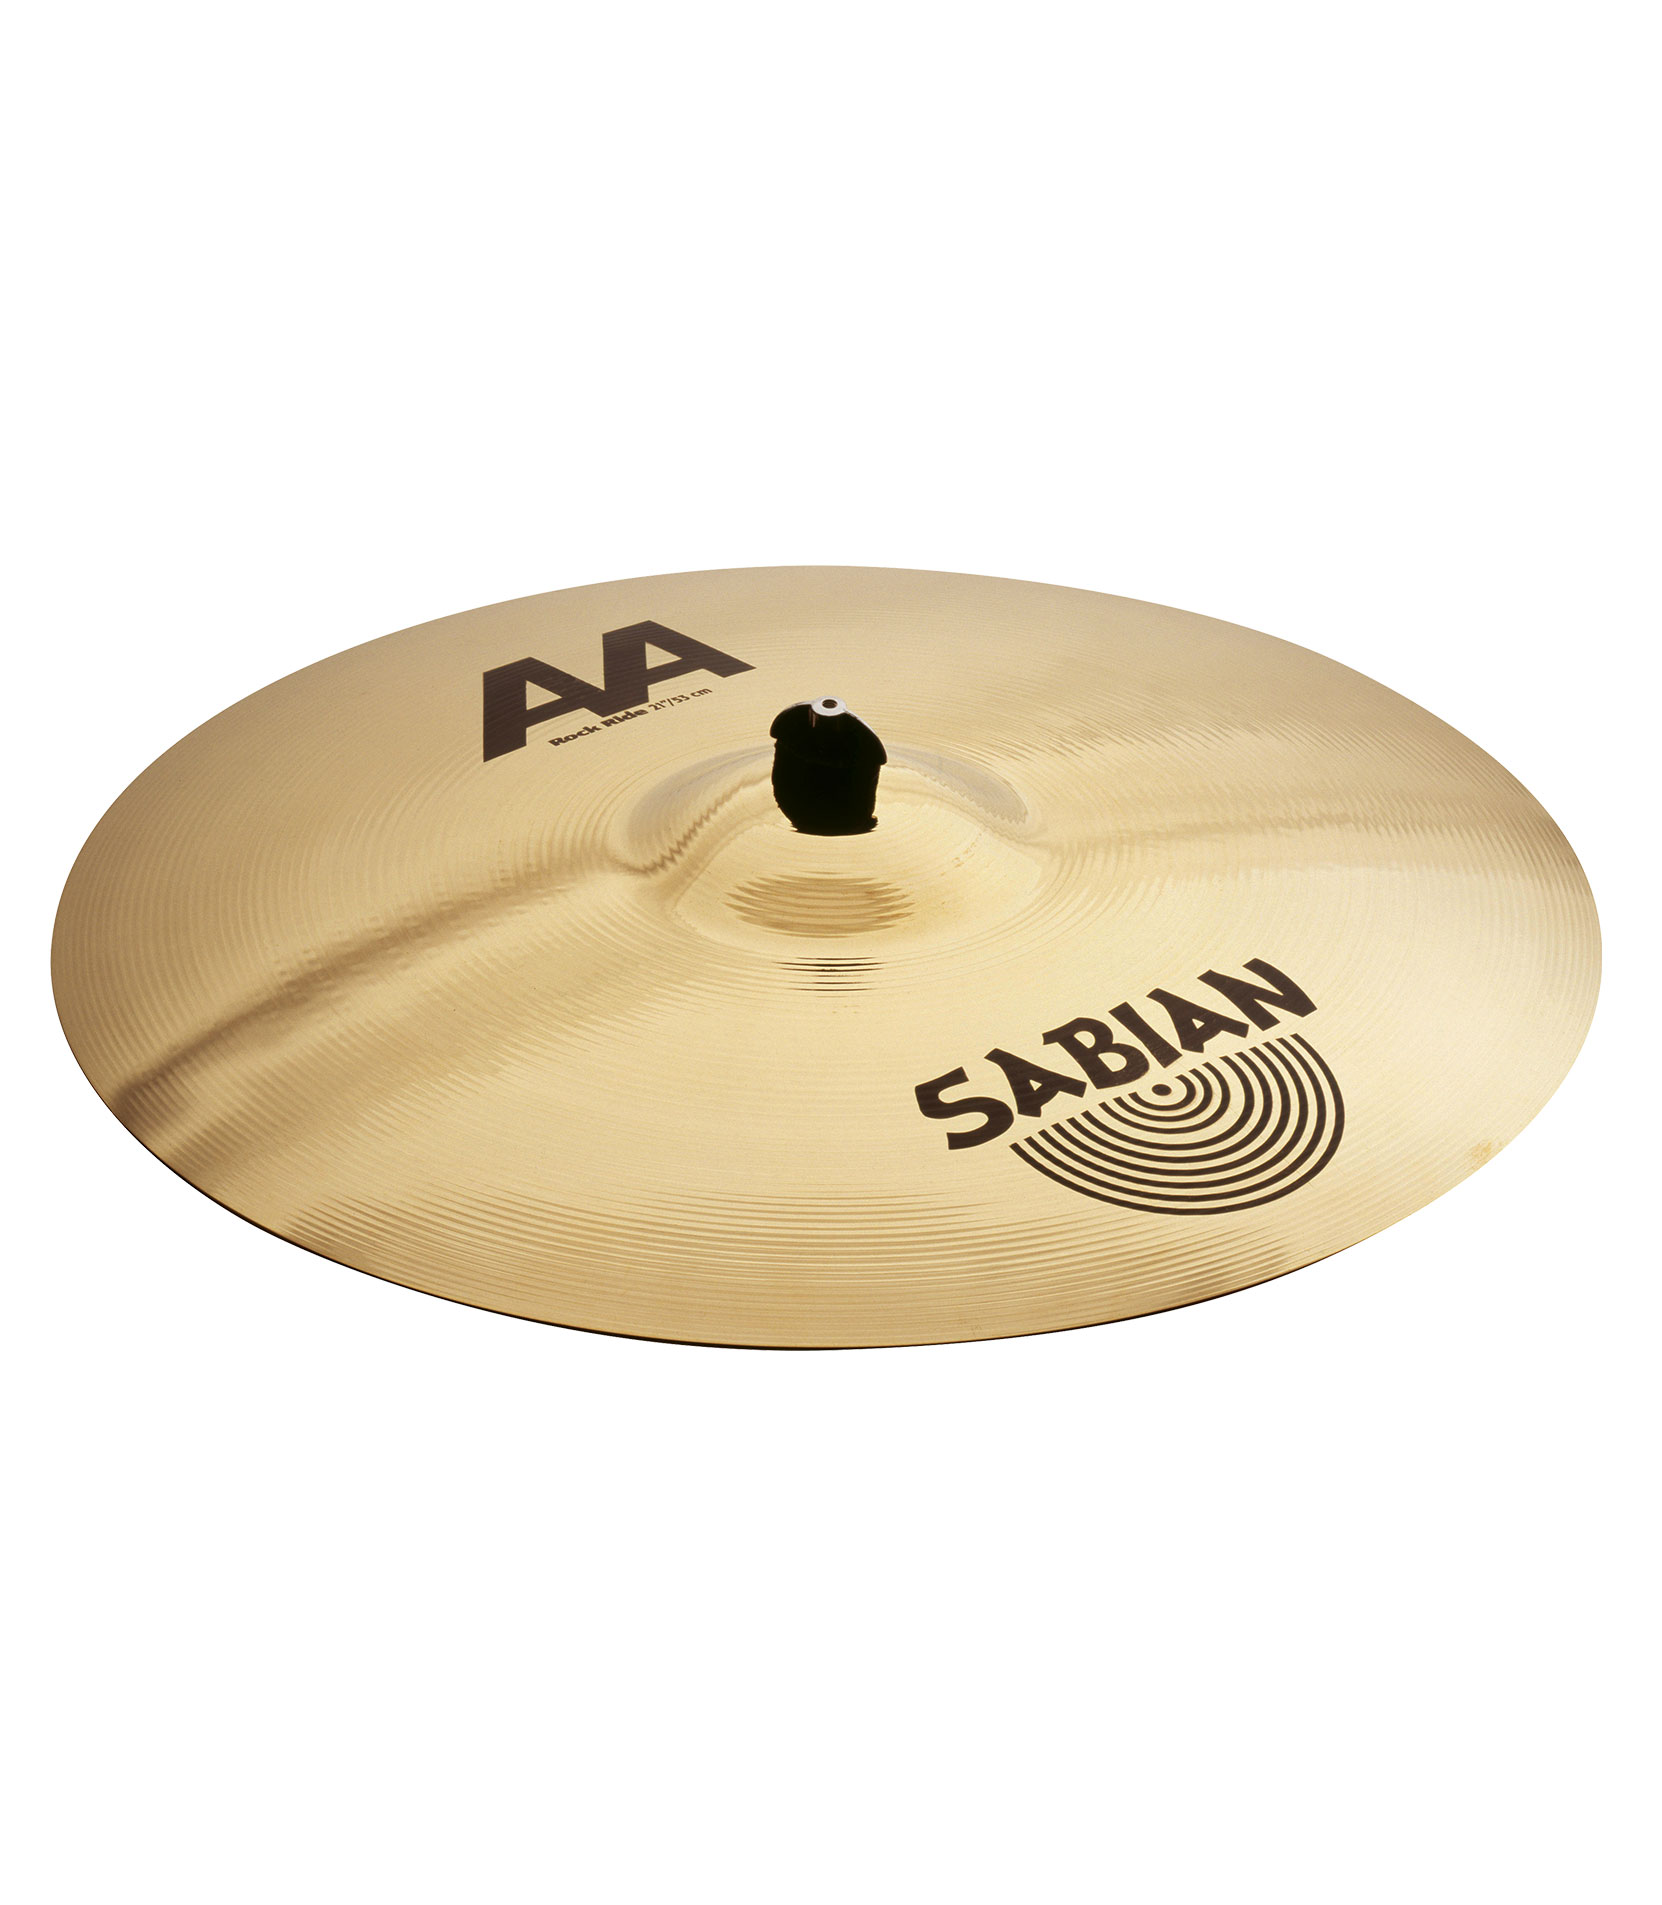 buy sabian cymbals 21 aa rock ride online at best price in dubai uae melody house. Black Bedroom Furniture Sets. Home Design Ideas